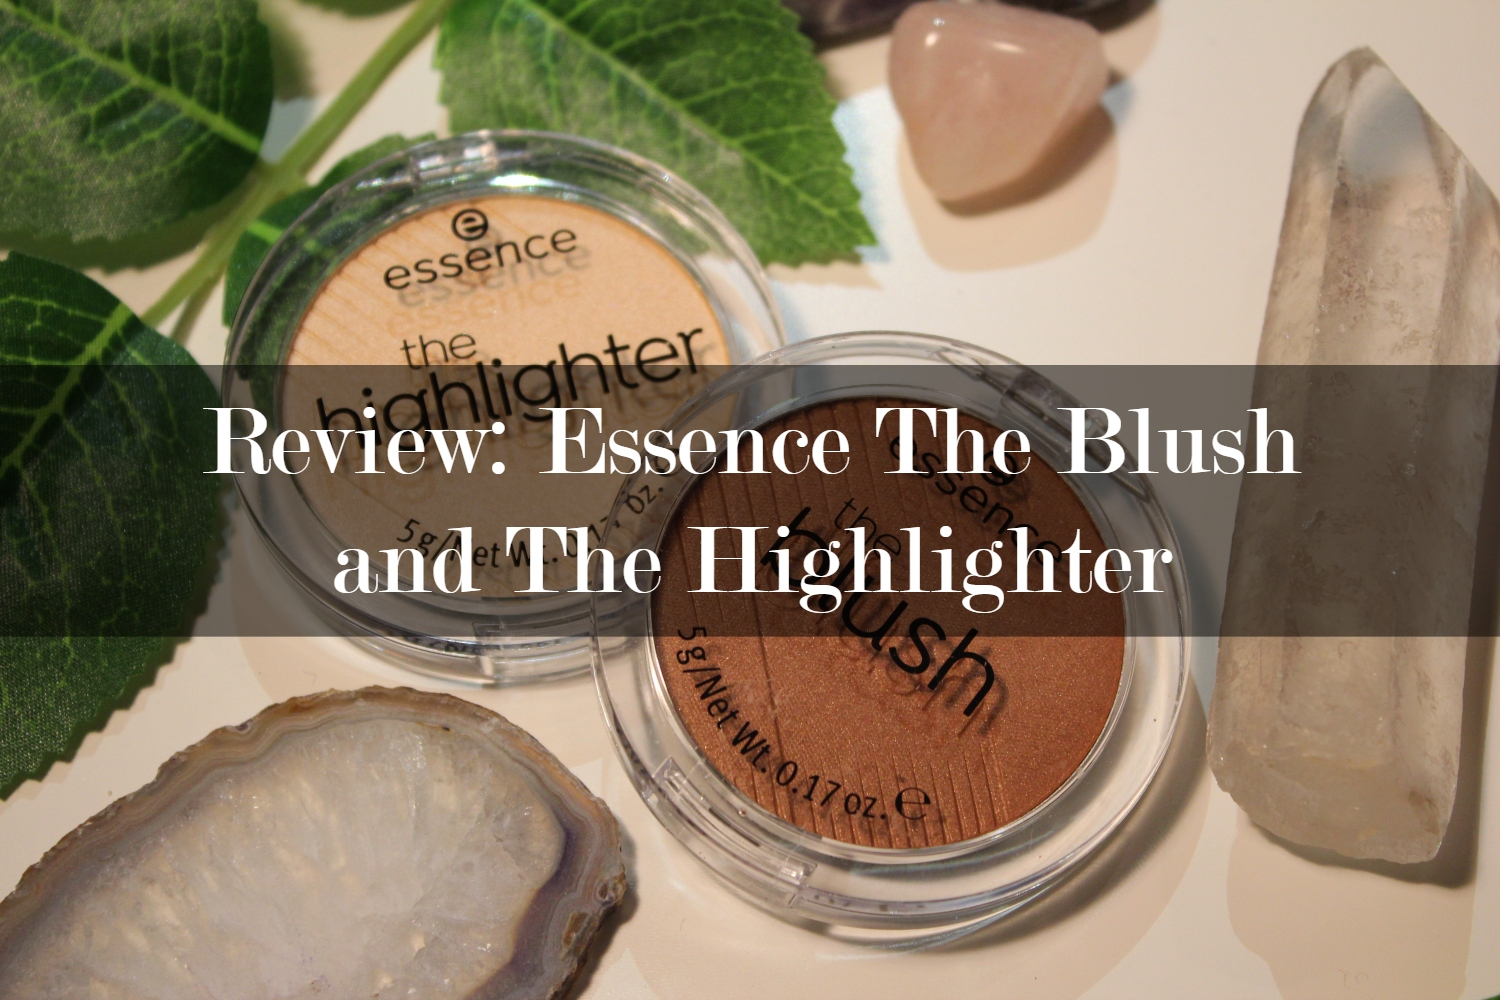 Header picture of the post. It shows the essence highlighter and blush with the title of the post on top of it.